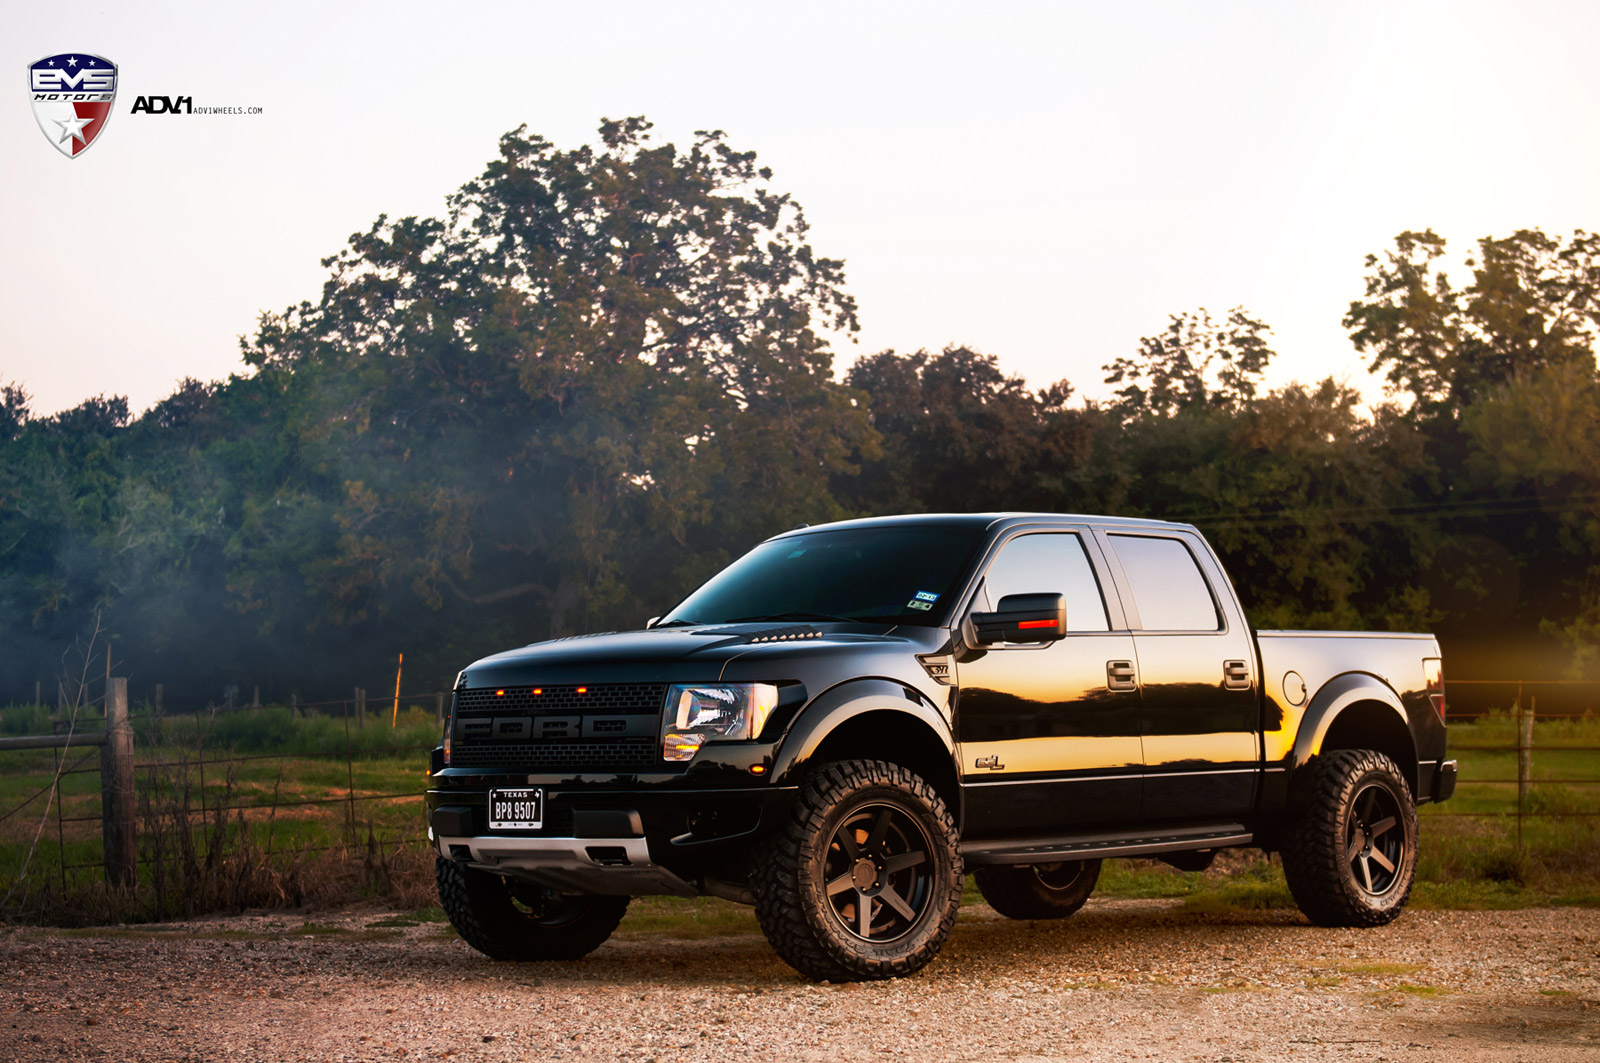 2014 raptor vs 2014 sierra denali ford raptor forum ford svt raptor forums ford raptor